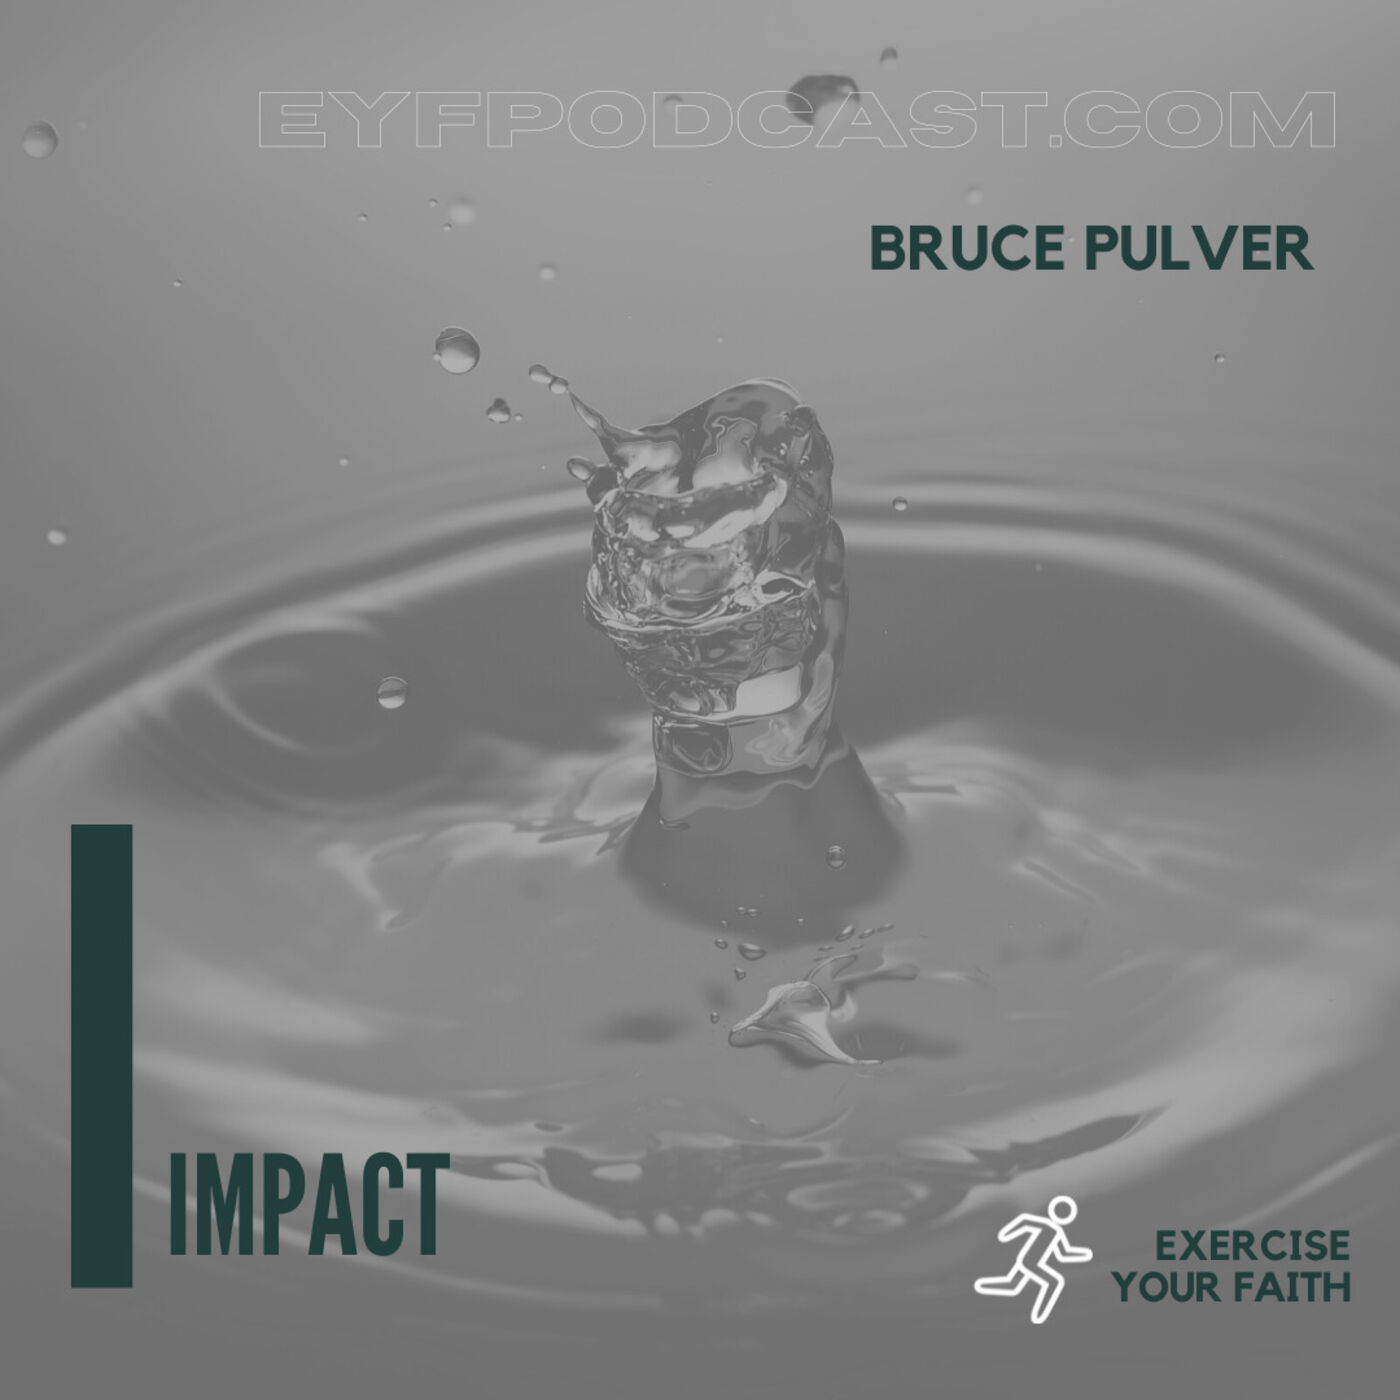 EYFPodcast- Exercise Your Faith and make an IMPACT for God and others with Bruce Pulver